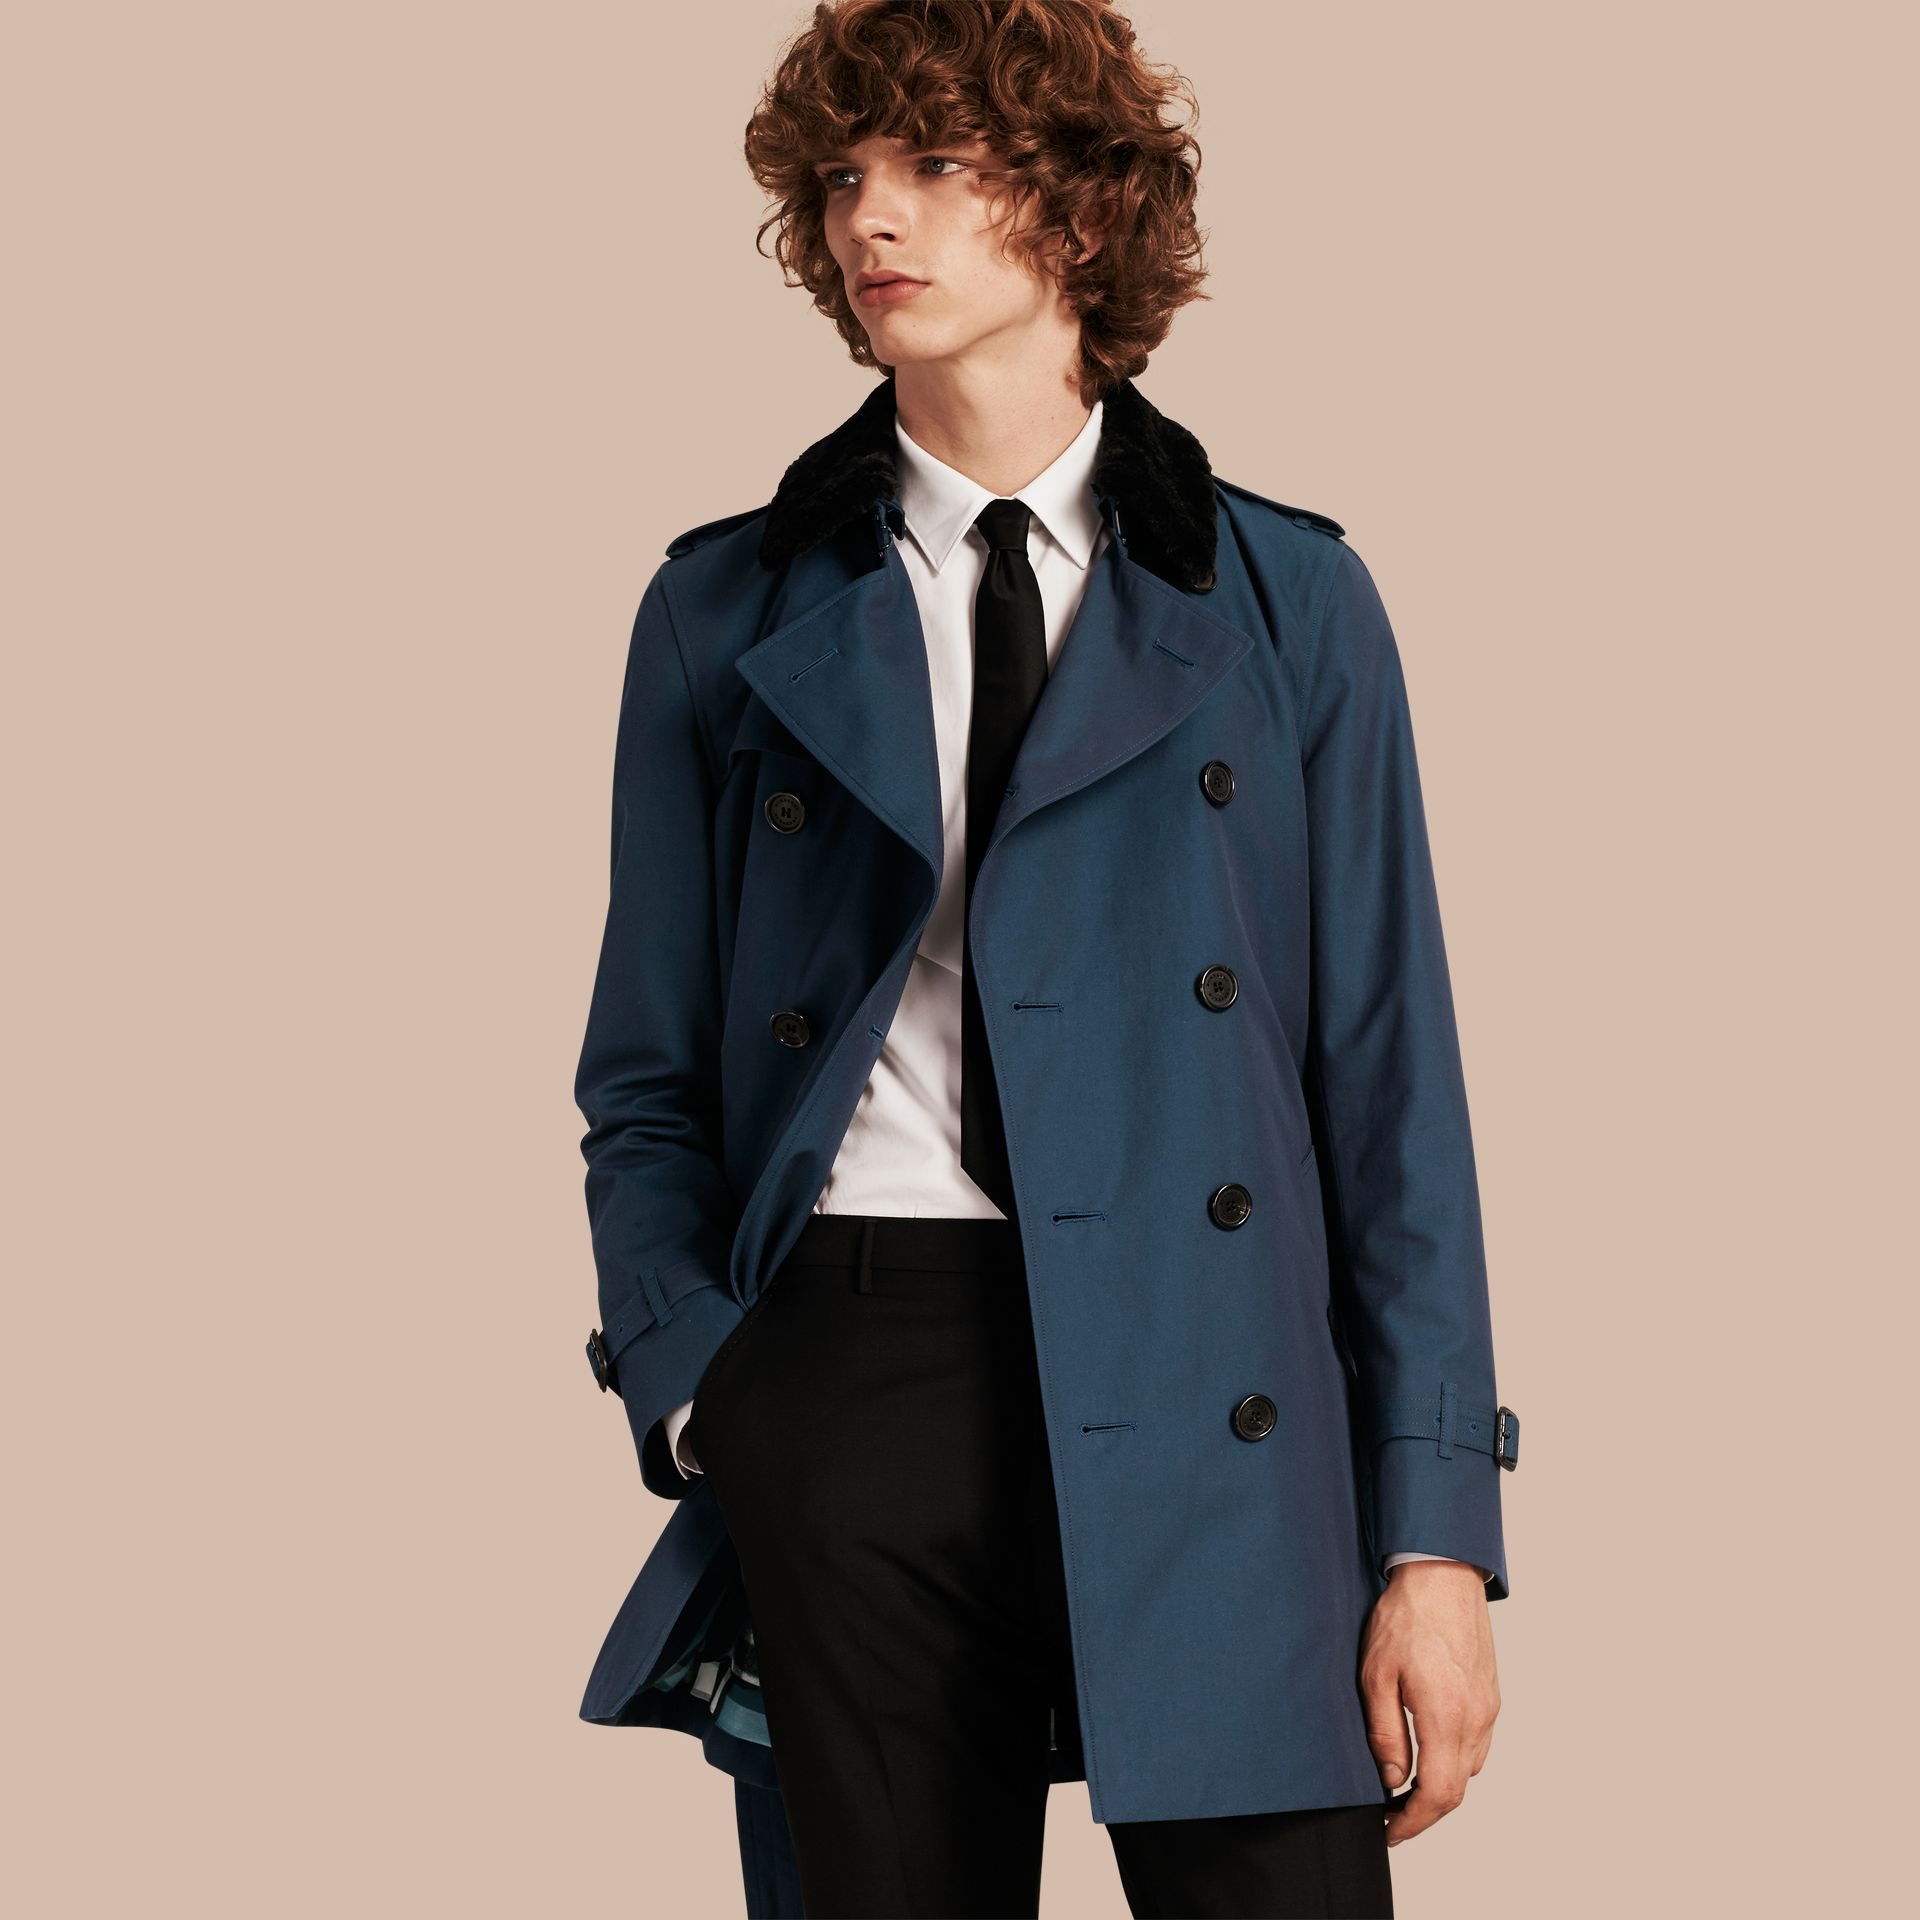 Teal blue Detachable Shearling Topcollar Cotton Gabardine Trench Coat with Warmer Teal Blue - gallery image 1